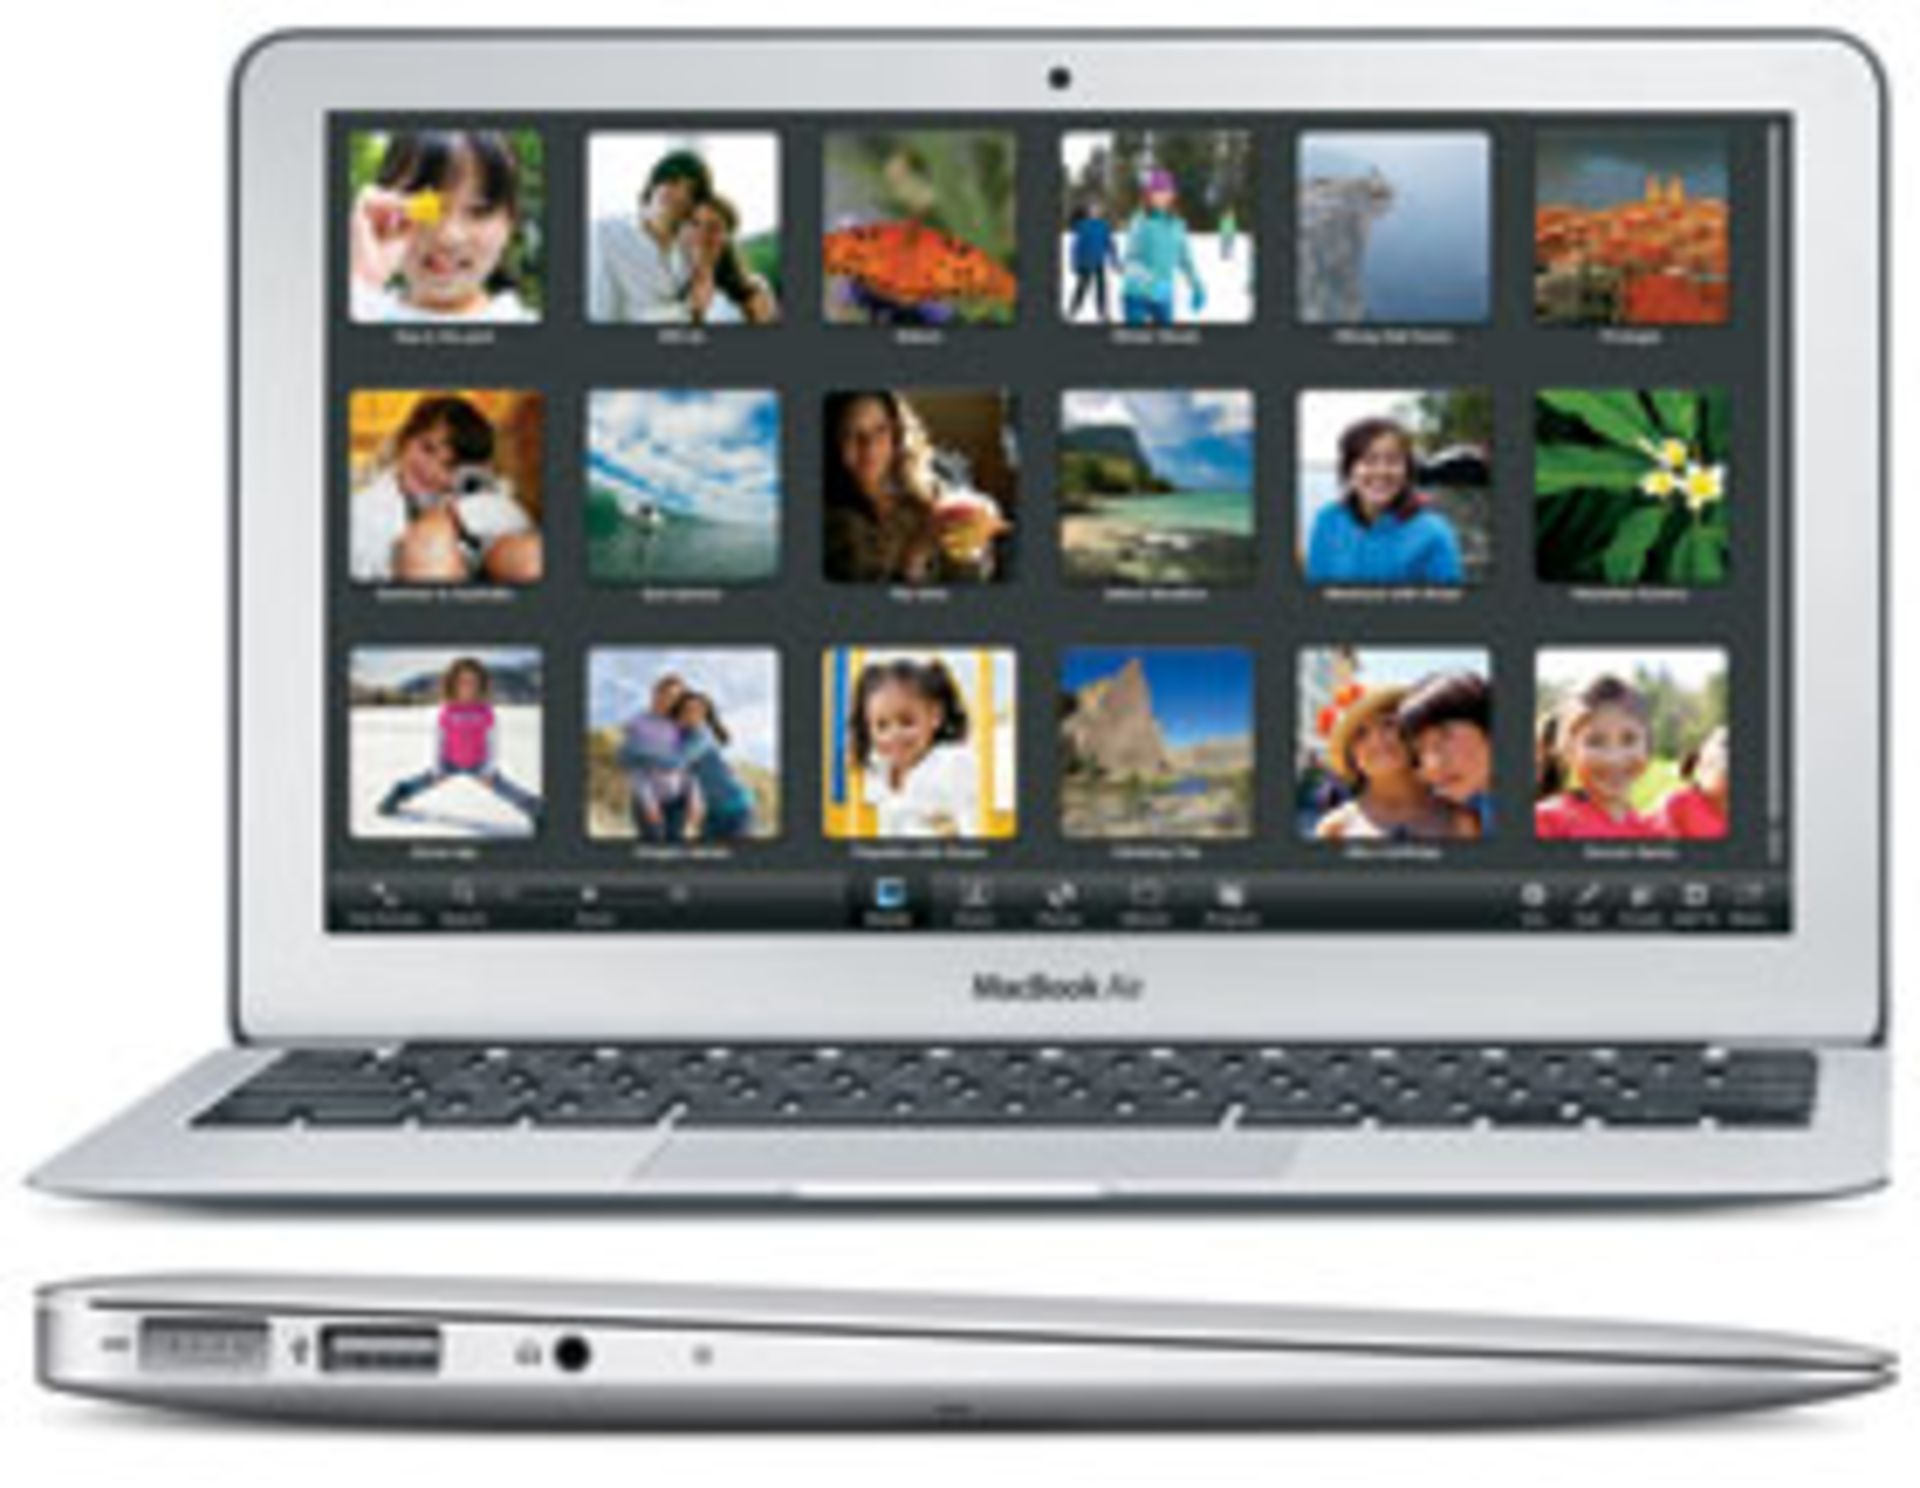 Lot 60037 - V Grade B Macbook Air 11.6 Inch Core 2 Duo - 64GB SSD - A1370 - Available Approx 7 Working Days